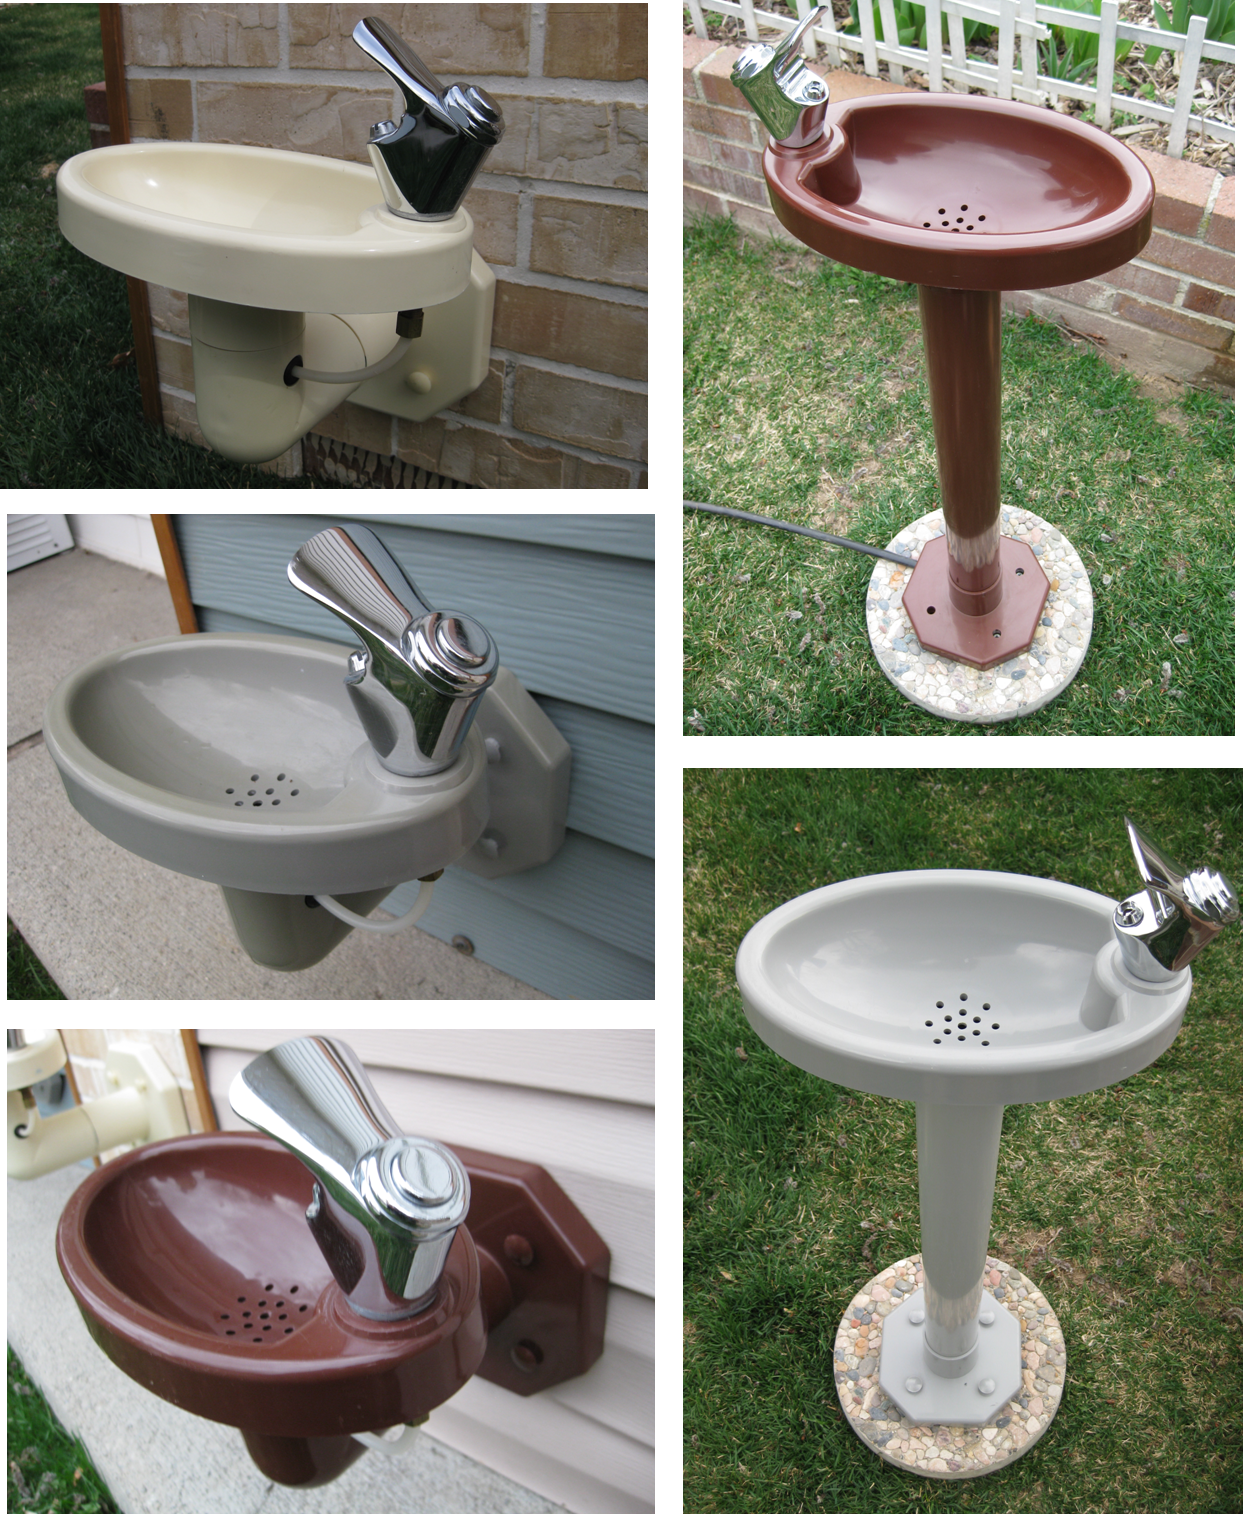 Outdoor Drinking Fountain For The Kids In Back Yard Then They Don T Come House Every Five Minutes Begging A Drink